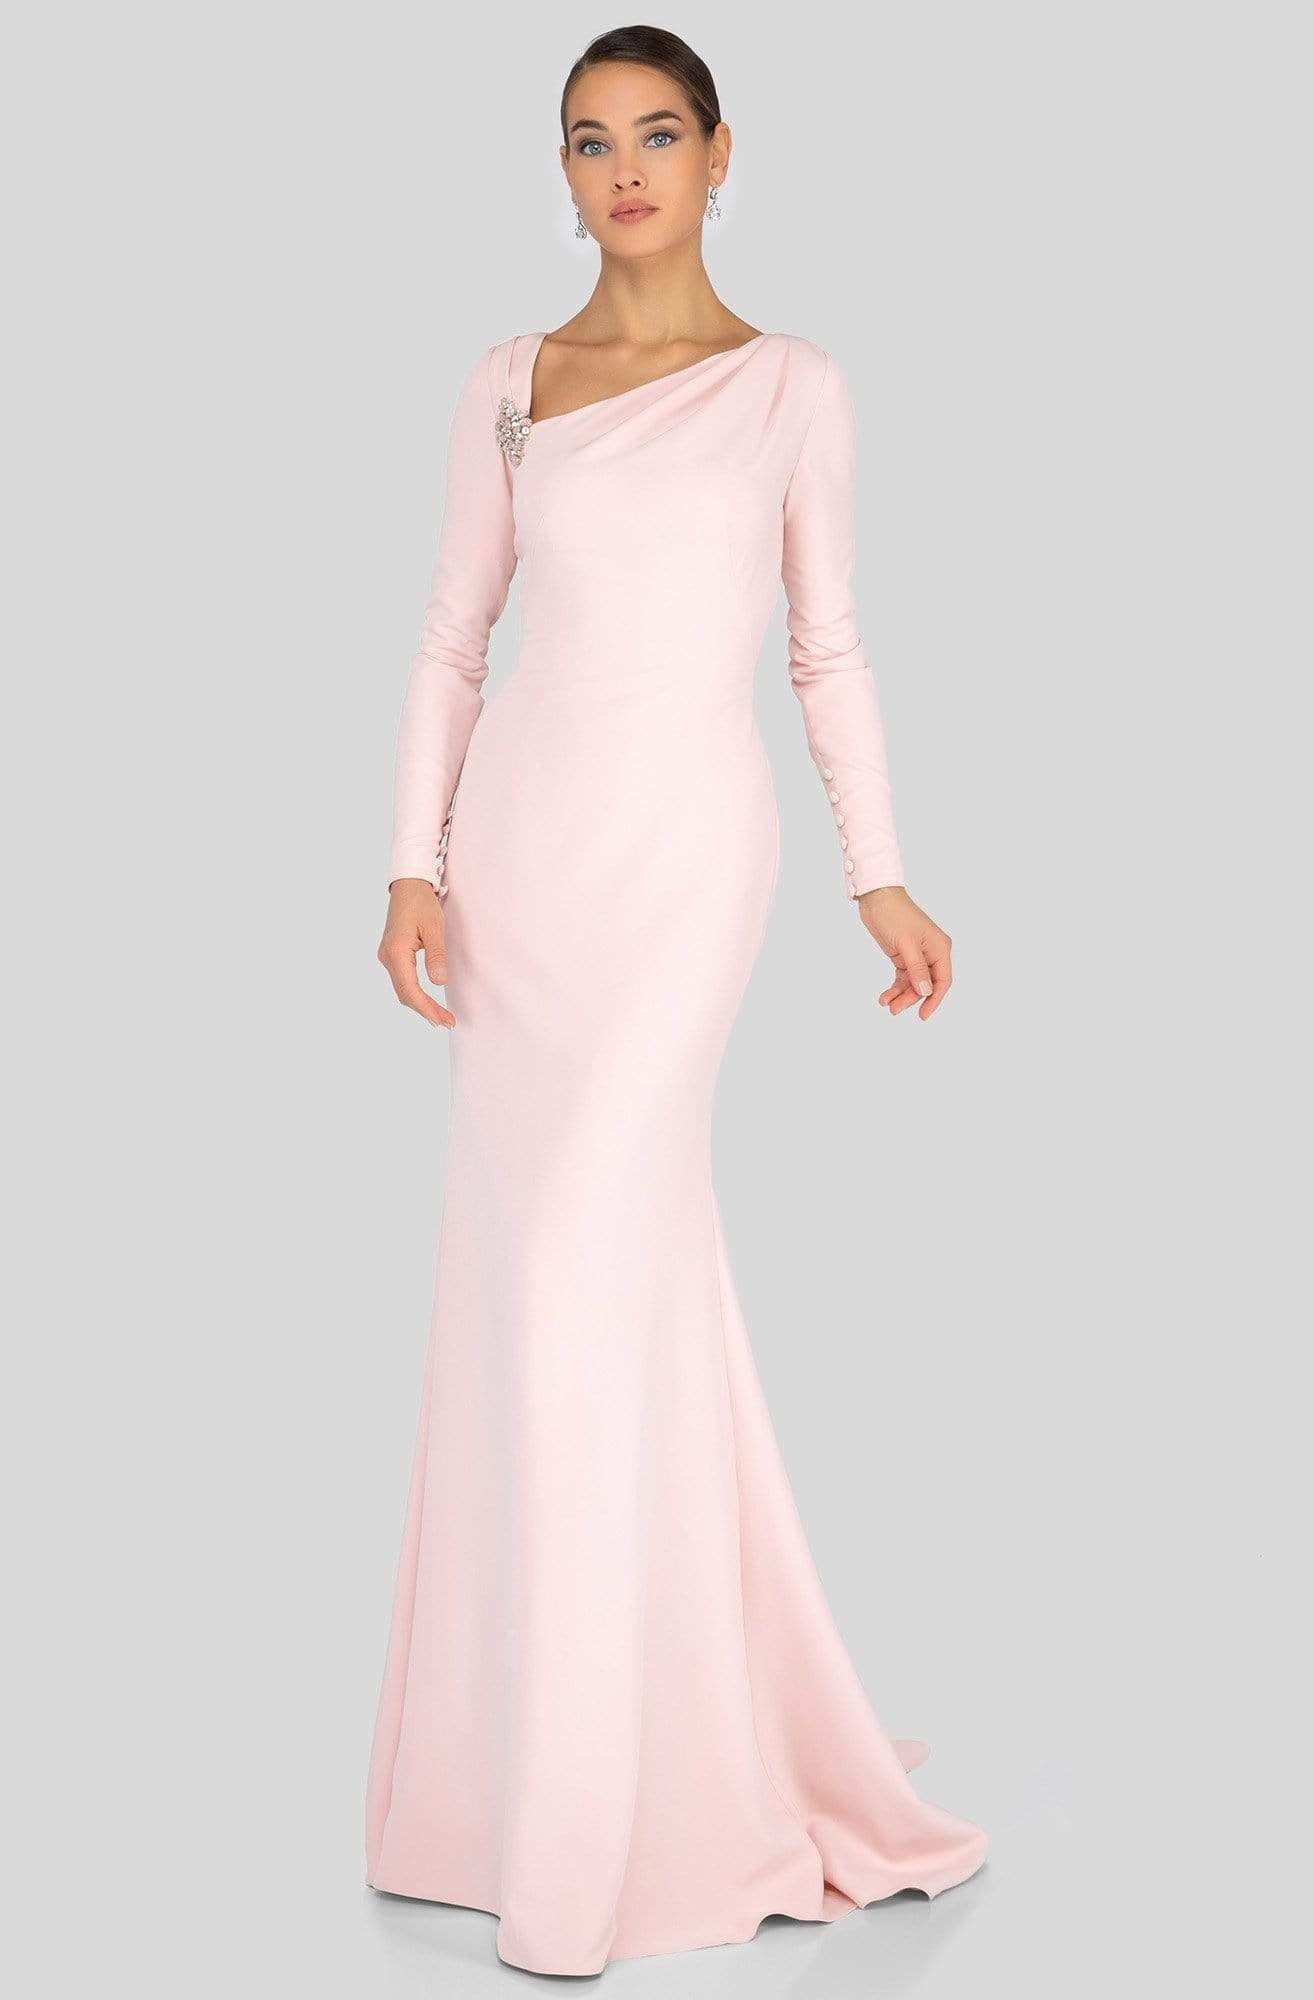 Terani Couture - 1911M9320 Asymmetric Neckline Long Sleeve Formal Gown In Pink